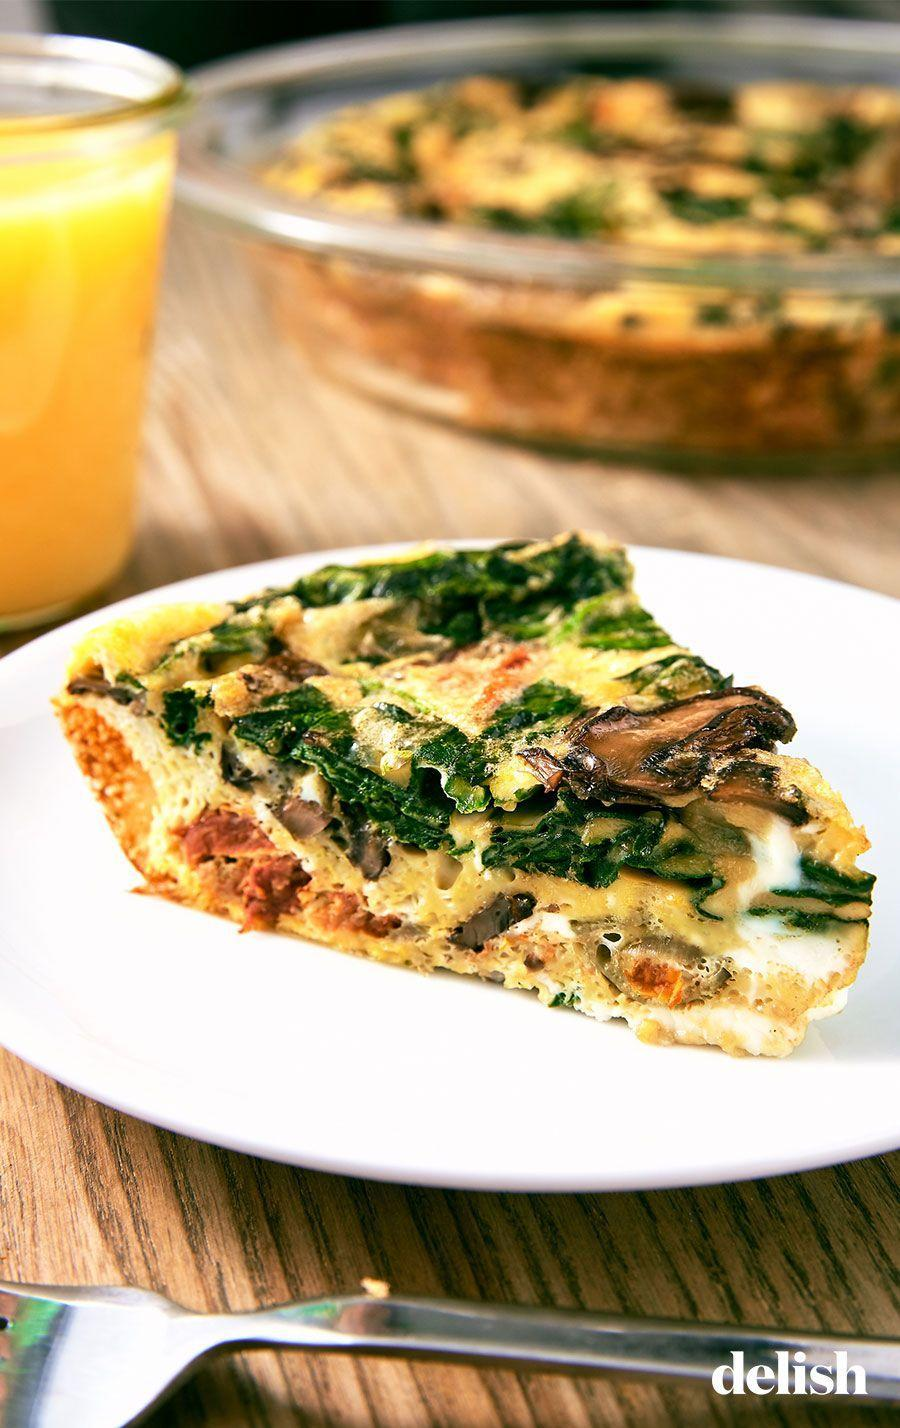 "<p>Don't worry, this low-carb dish is still full of flavor.</p><p>Get the recipe from <a href=""https://www.delish.com/cooking/recipe-ideas/a25648042/crustless-quiche-recipe/"" rel=""nofollow noopener"" target=""_blank"" data-ylk=""slk:Delish"" class=""link rapid-noclick-resp"">Delish</a>.</p>"